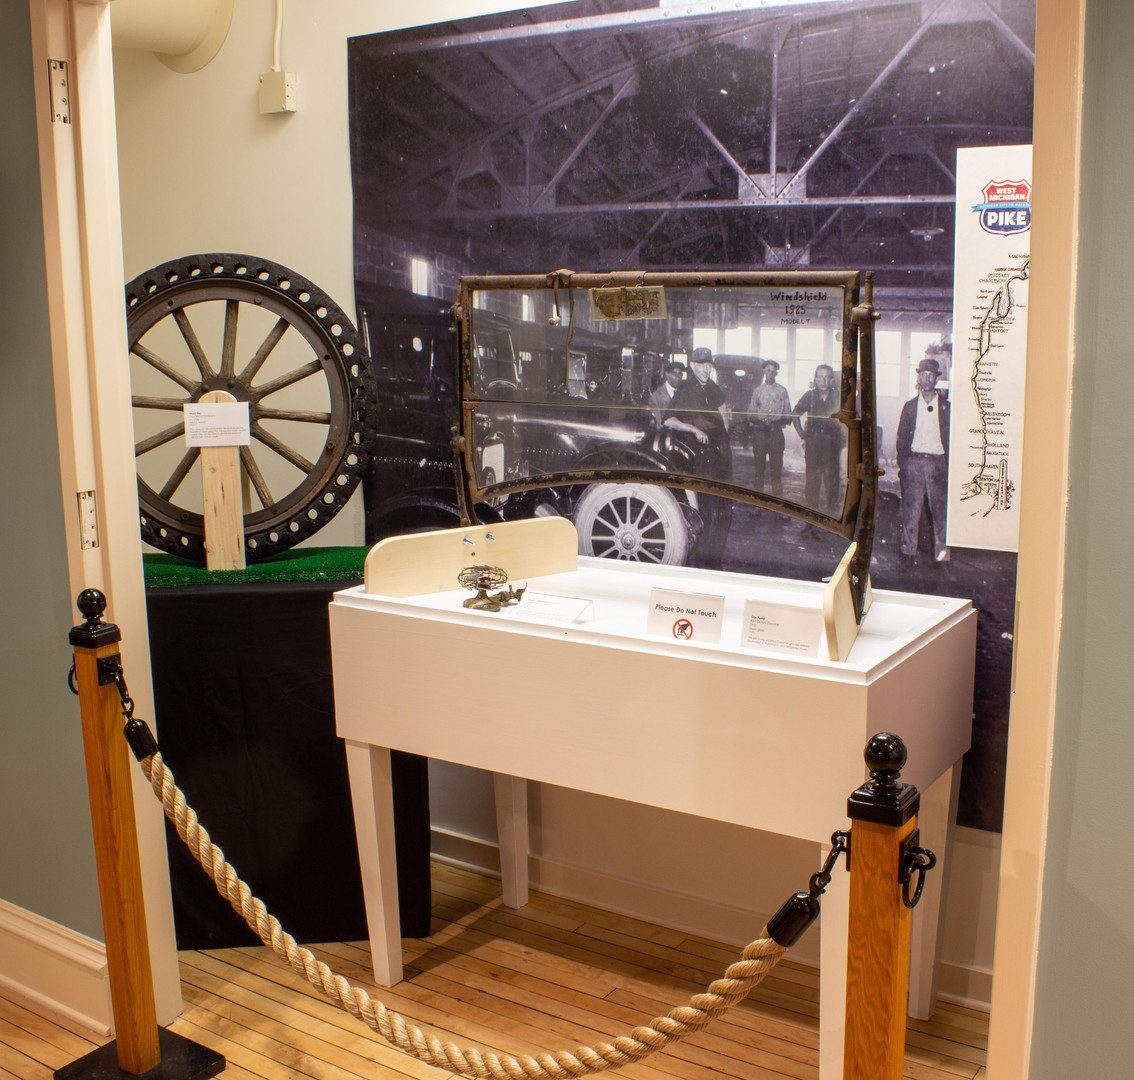 TCHM Exhibit 52.JPG - photograph of the inside of the closet garage scene. In the foreground is a 1925 Model T windshield on a large white pedestal. To the left of the windshield is a large rubber and wooden wheel from a 1920s truck. Behind the windshield and the wheel is a black and white photograph of the inside of a local car garage in the 1920s.